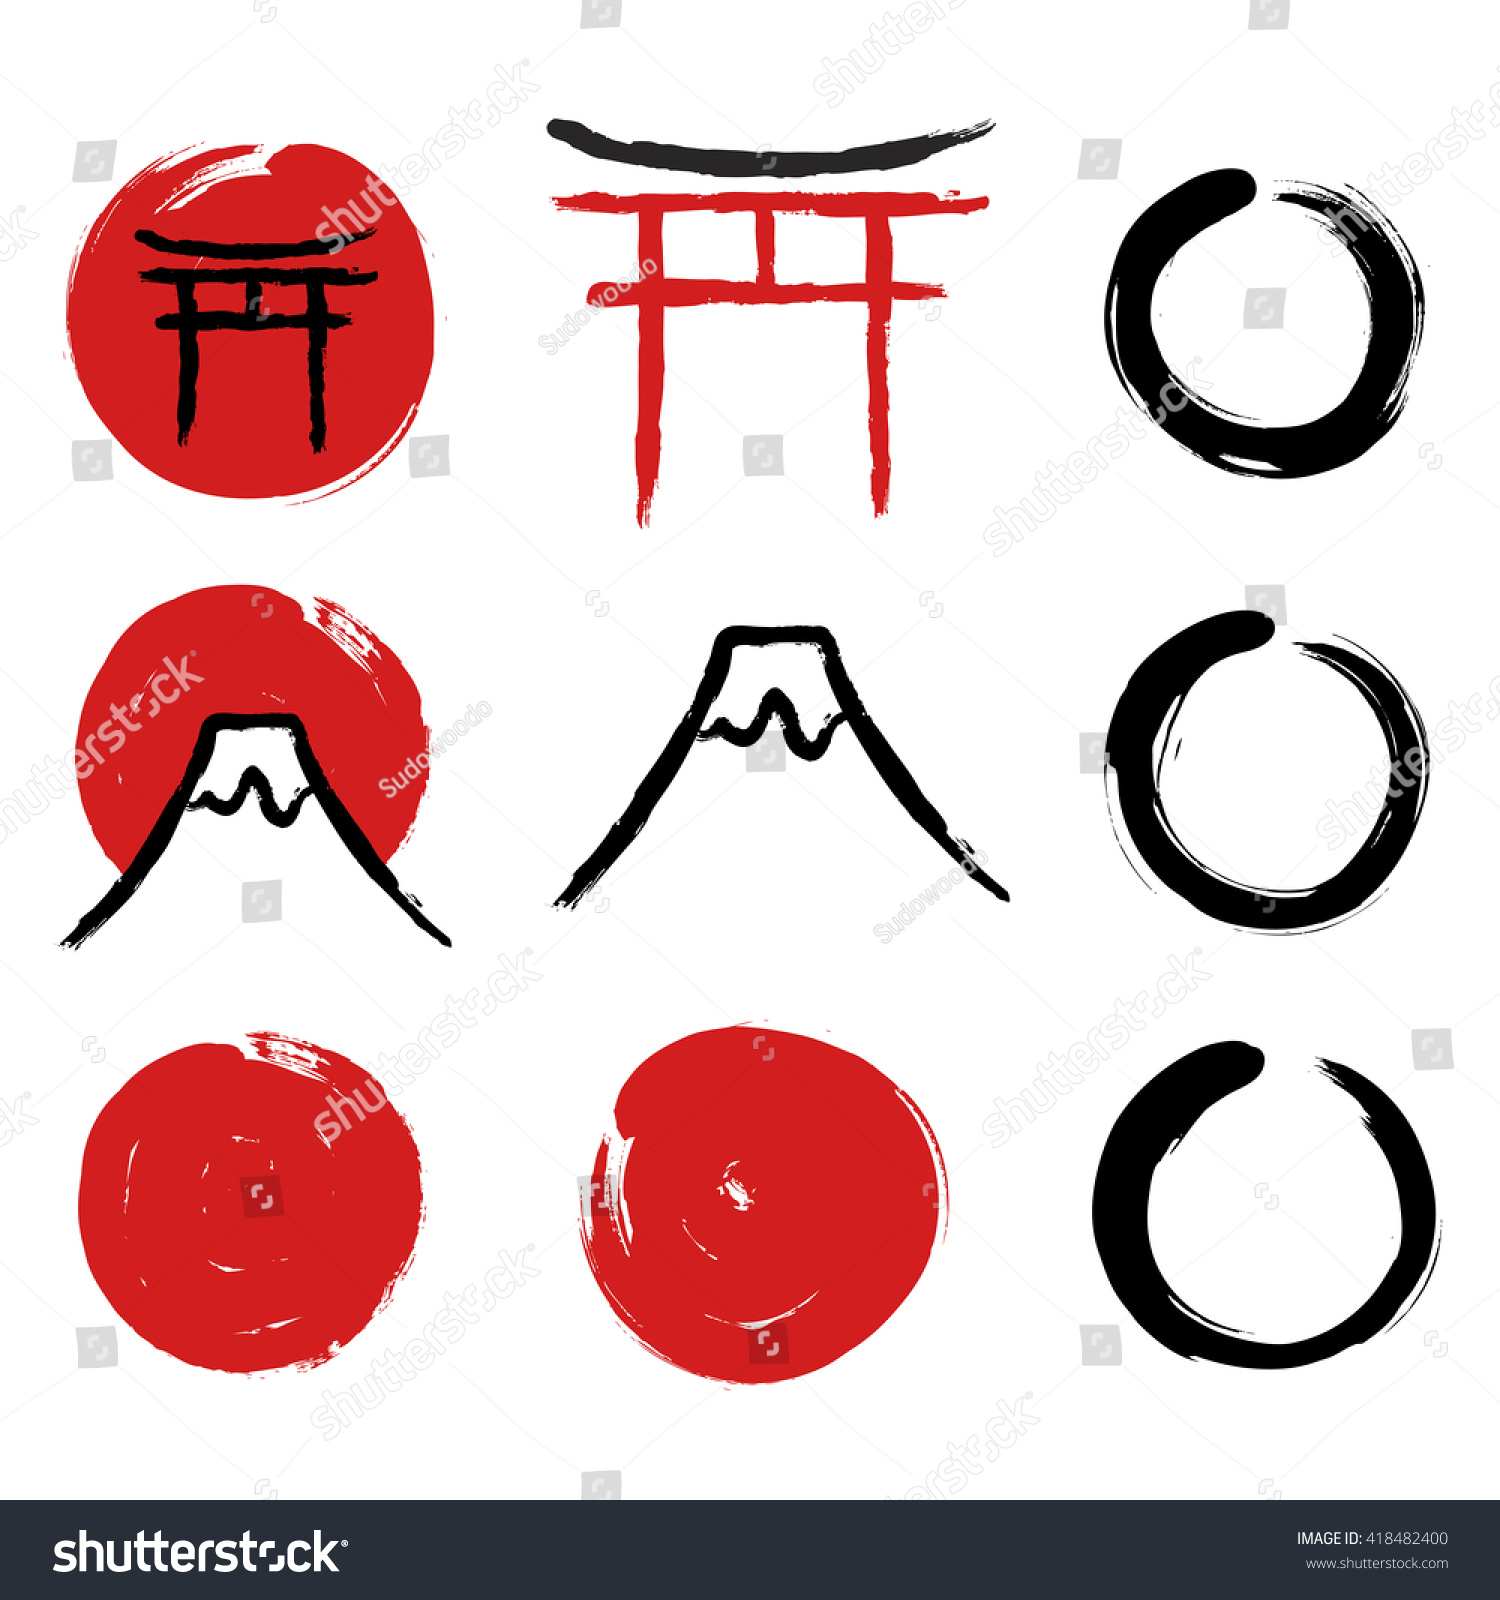 image gallery japanese circle symbol red. Black Bedroom Furniture Sets. Home Design Ideas